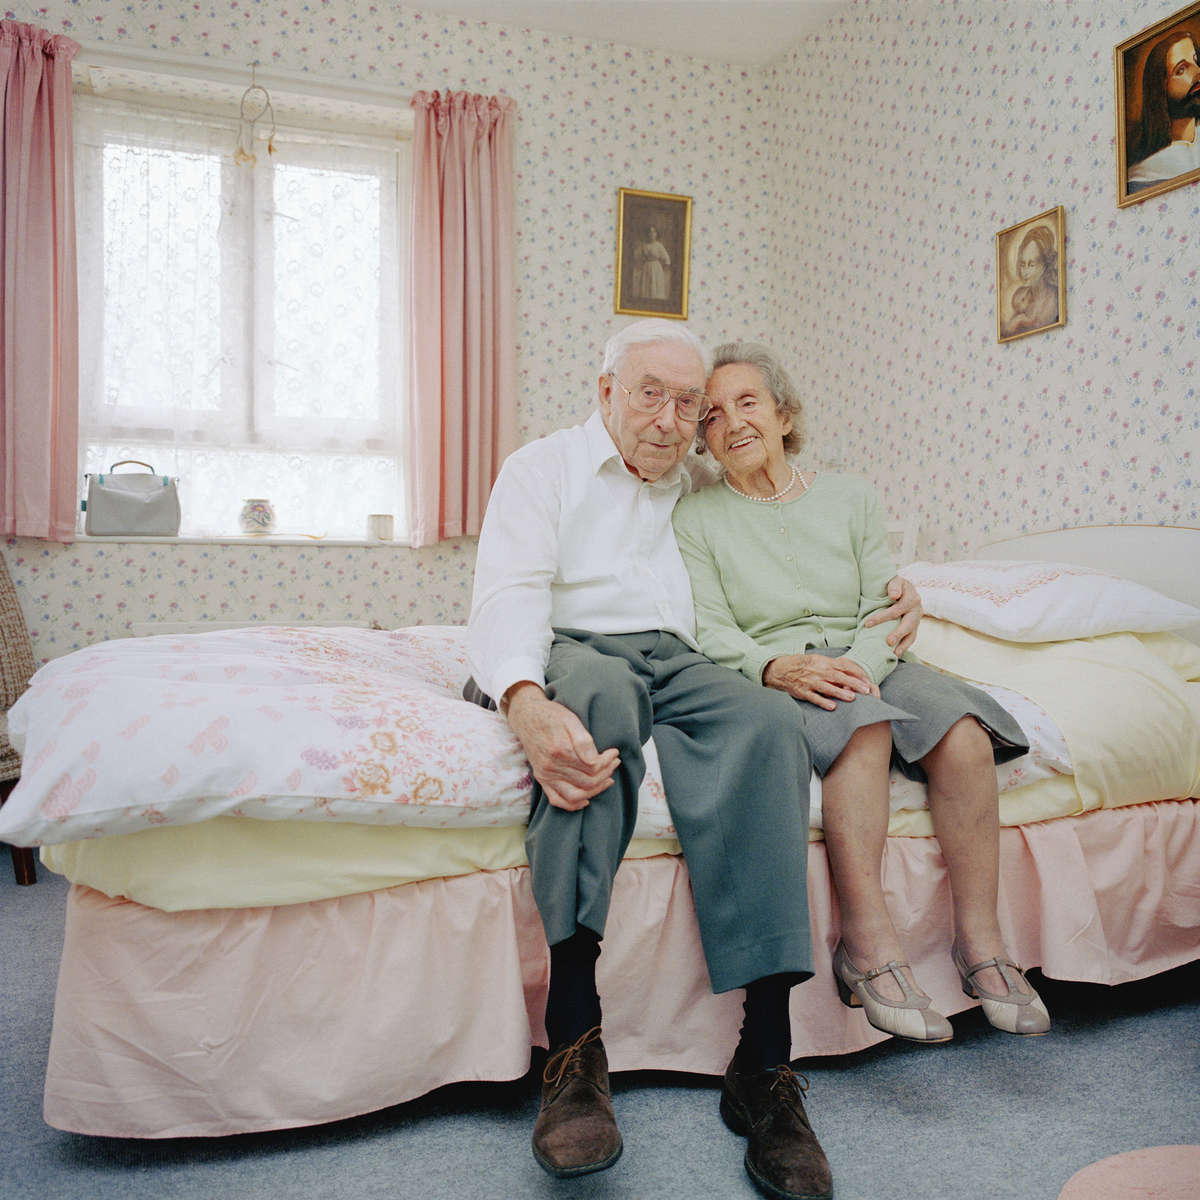 Janet 95 and Robin 85 in Janet's bedroom at Reardon Court, a social services run home for the elderly in North London. Janet has been a widow for over 30 years and Robin has lived alone since 1947. They say falling in love has been an unexpected gift.